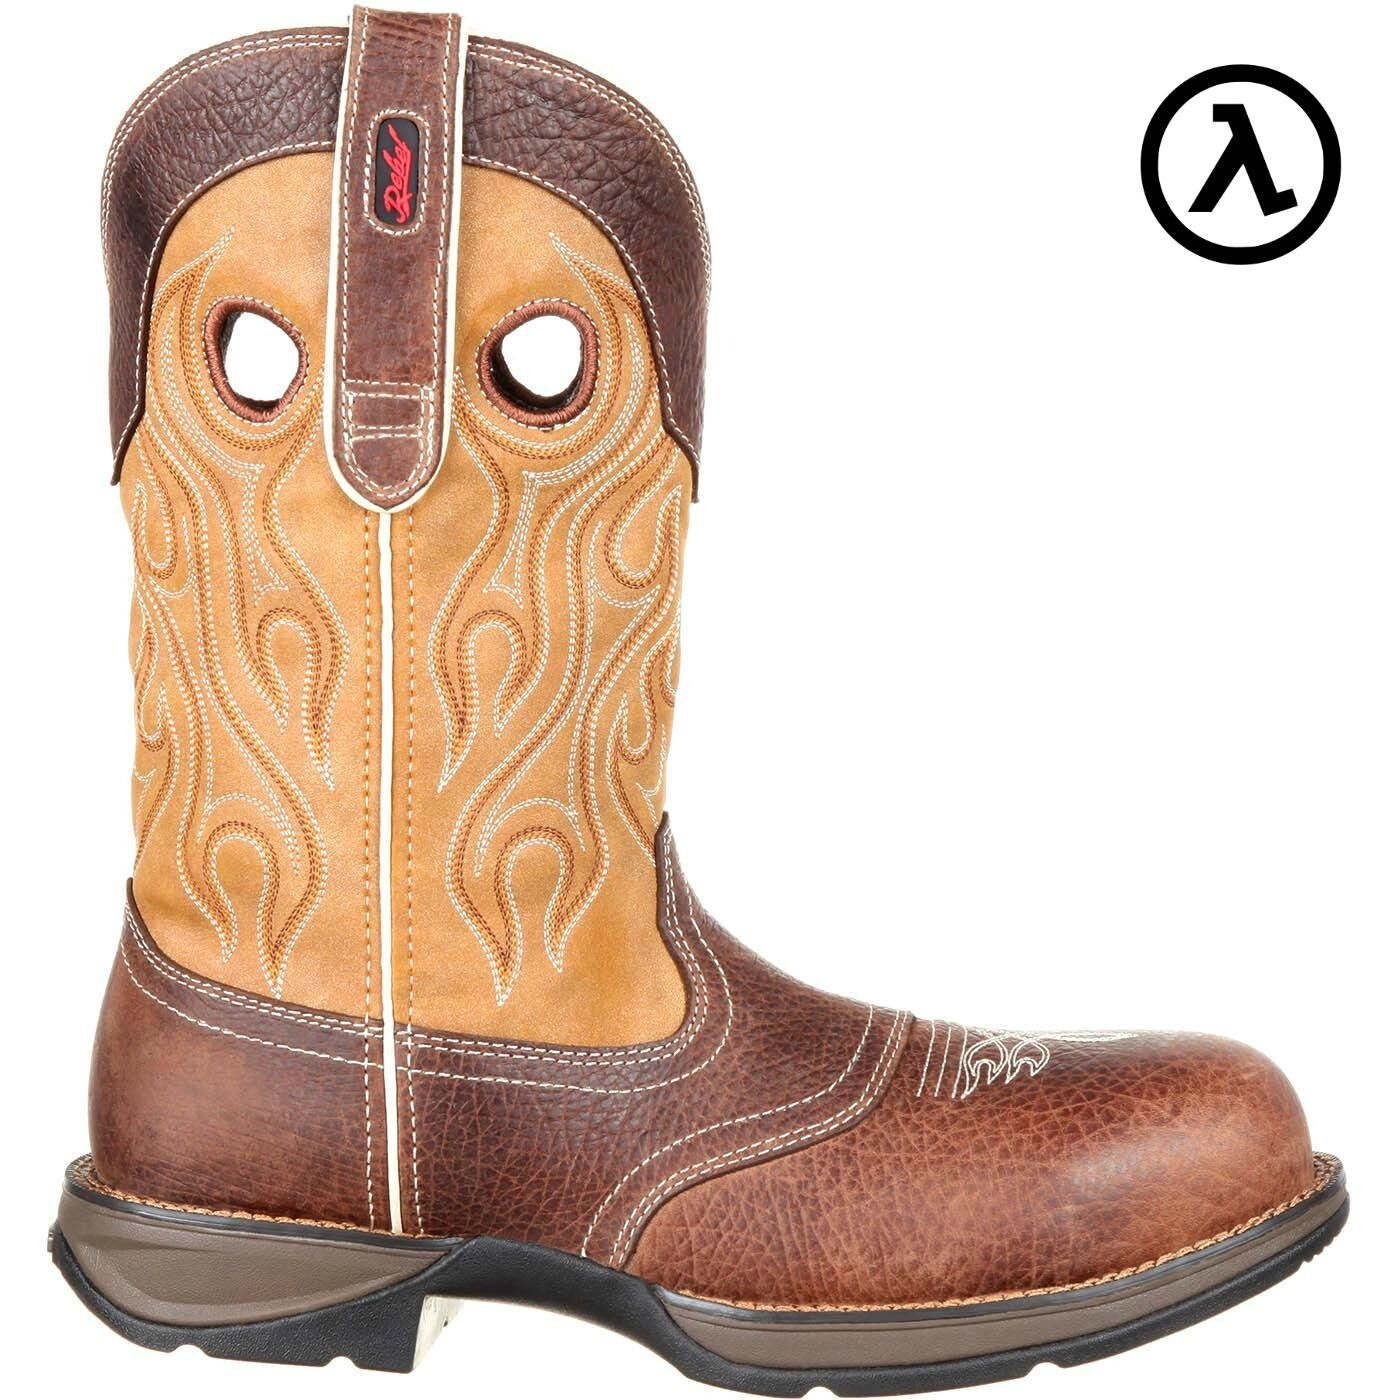 REBEL BY DURANGO COMPOSITE TOE WTRPF SADDLE WESTERN Stiefel DDB0123  SALE